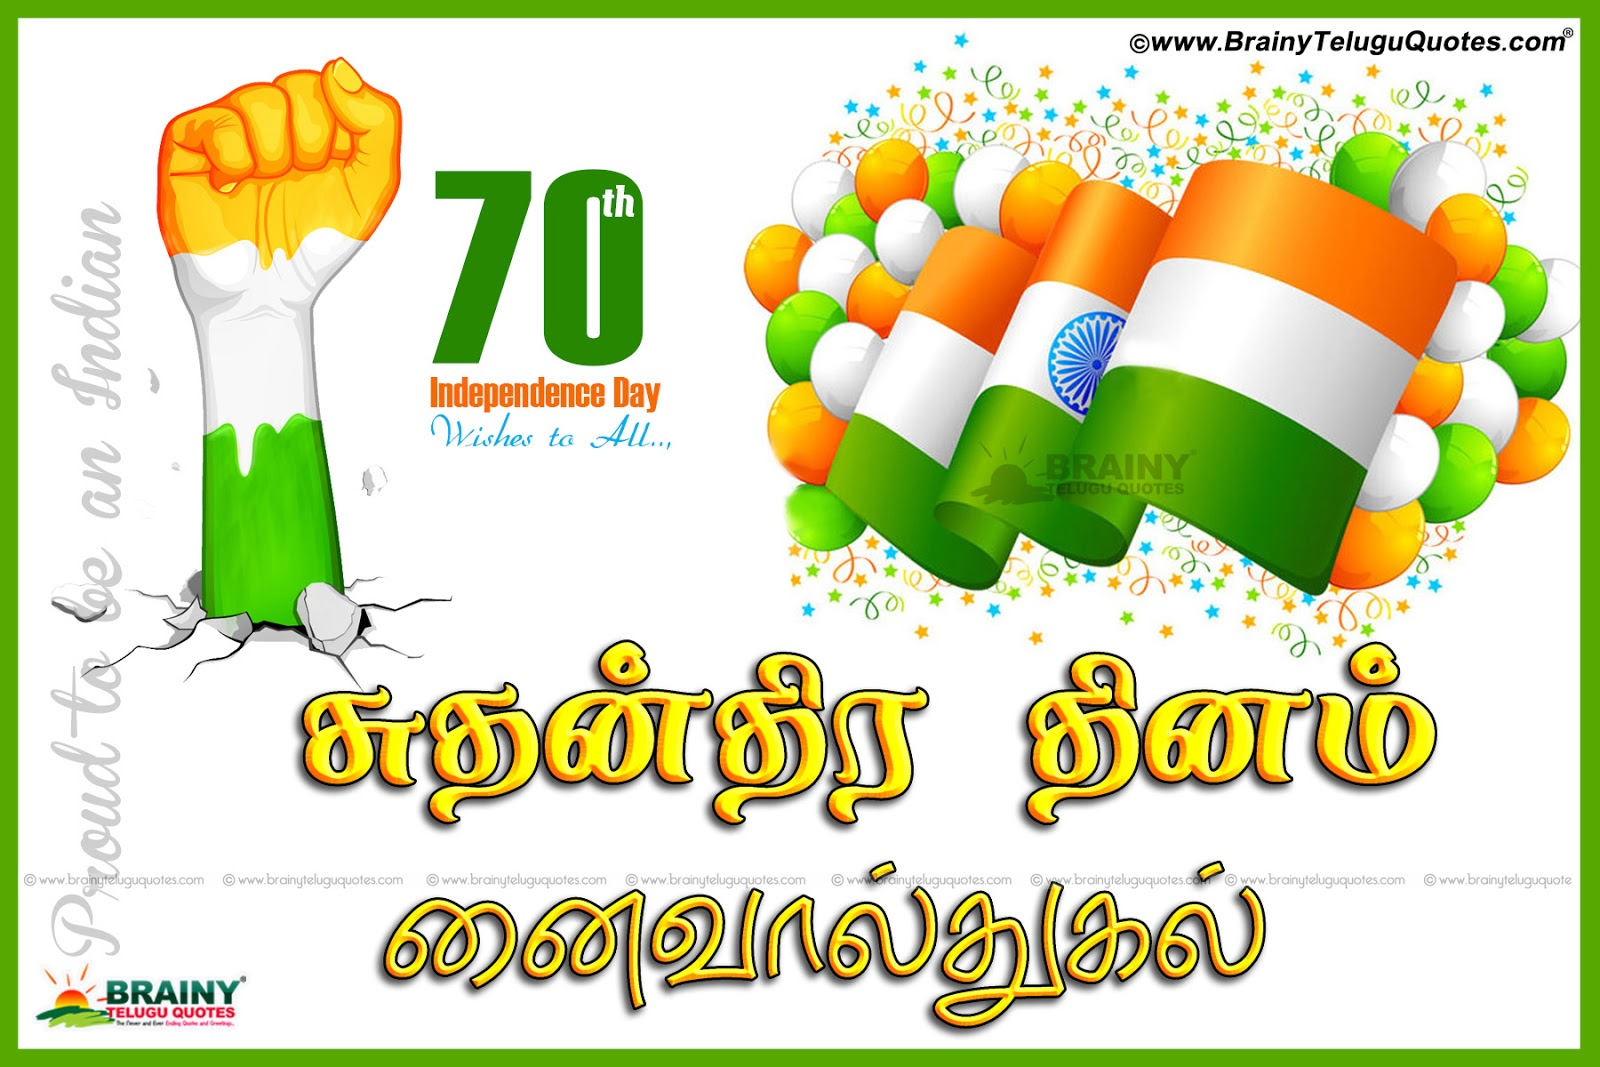 ... With Hd Wallpapers Online Best Latest Tamil Independence Day Wishes  Greetings Tamil Independence Day Messages Tamil Independence Day Speeches  Freedom ...